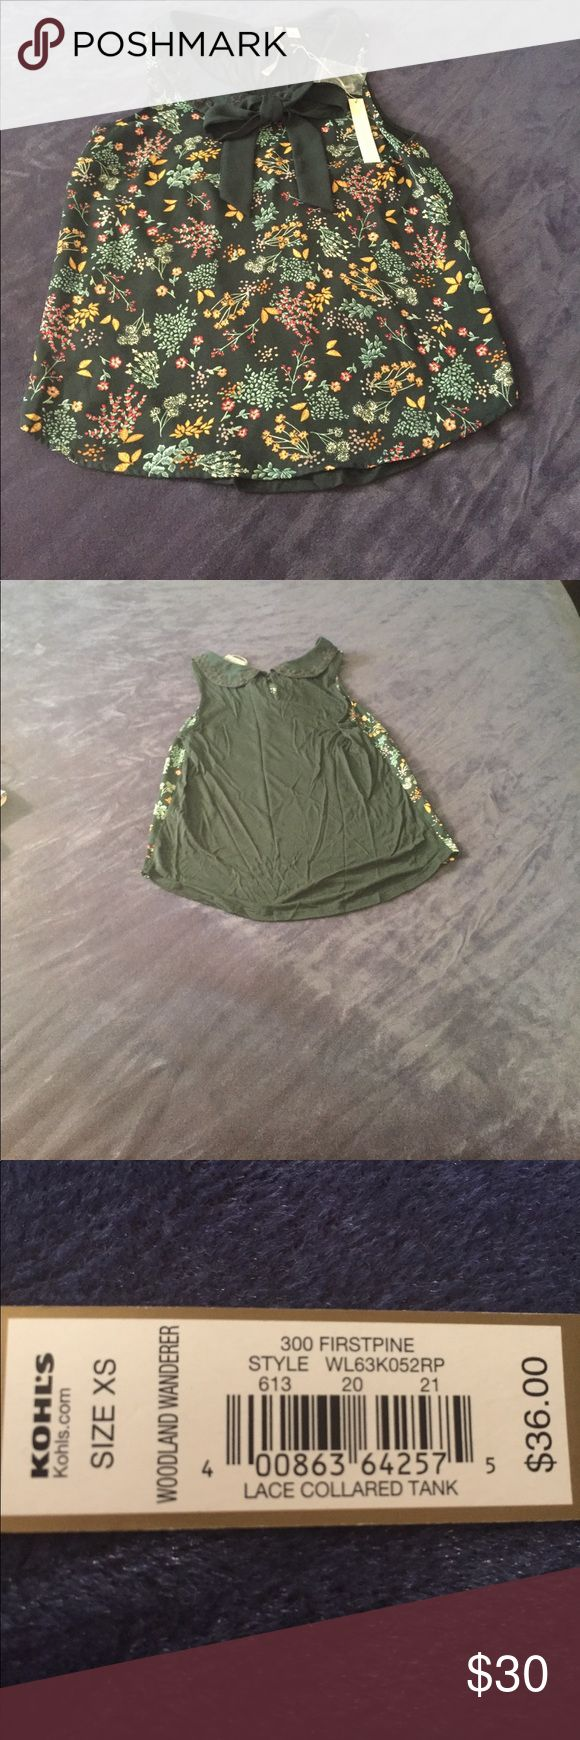 LC Lauren Conrad Lace Collared Tank From Woodland Wanderer Collection, color is called Firstpine.  Peter Pan collar and keyhole in the back, and ribbon to tie in a bow in the front.  Dark green with floral pattern.  🚫No Trades🚫 LC Lauren Conrad Tops Tank Tops